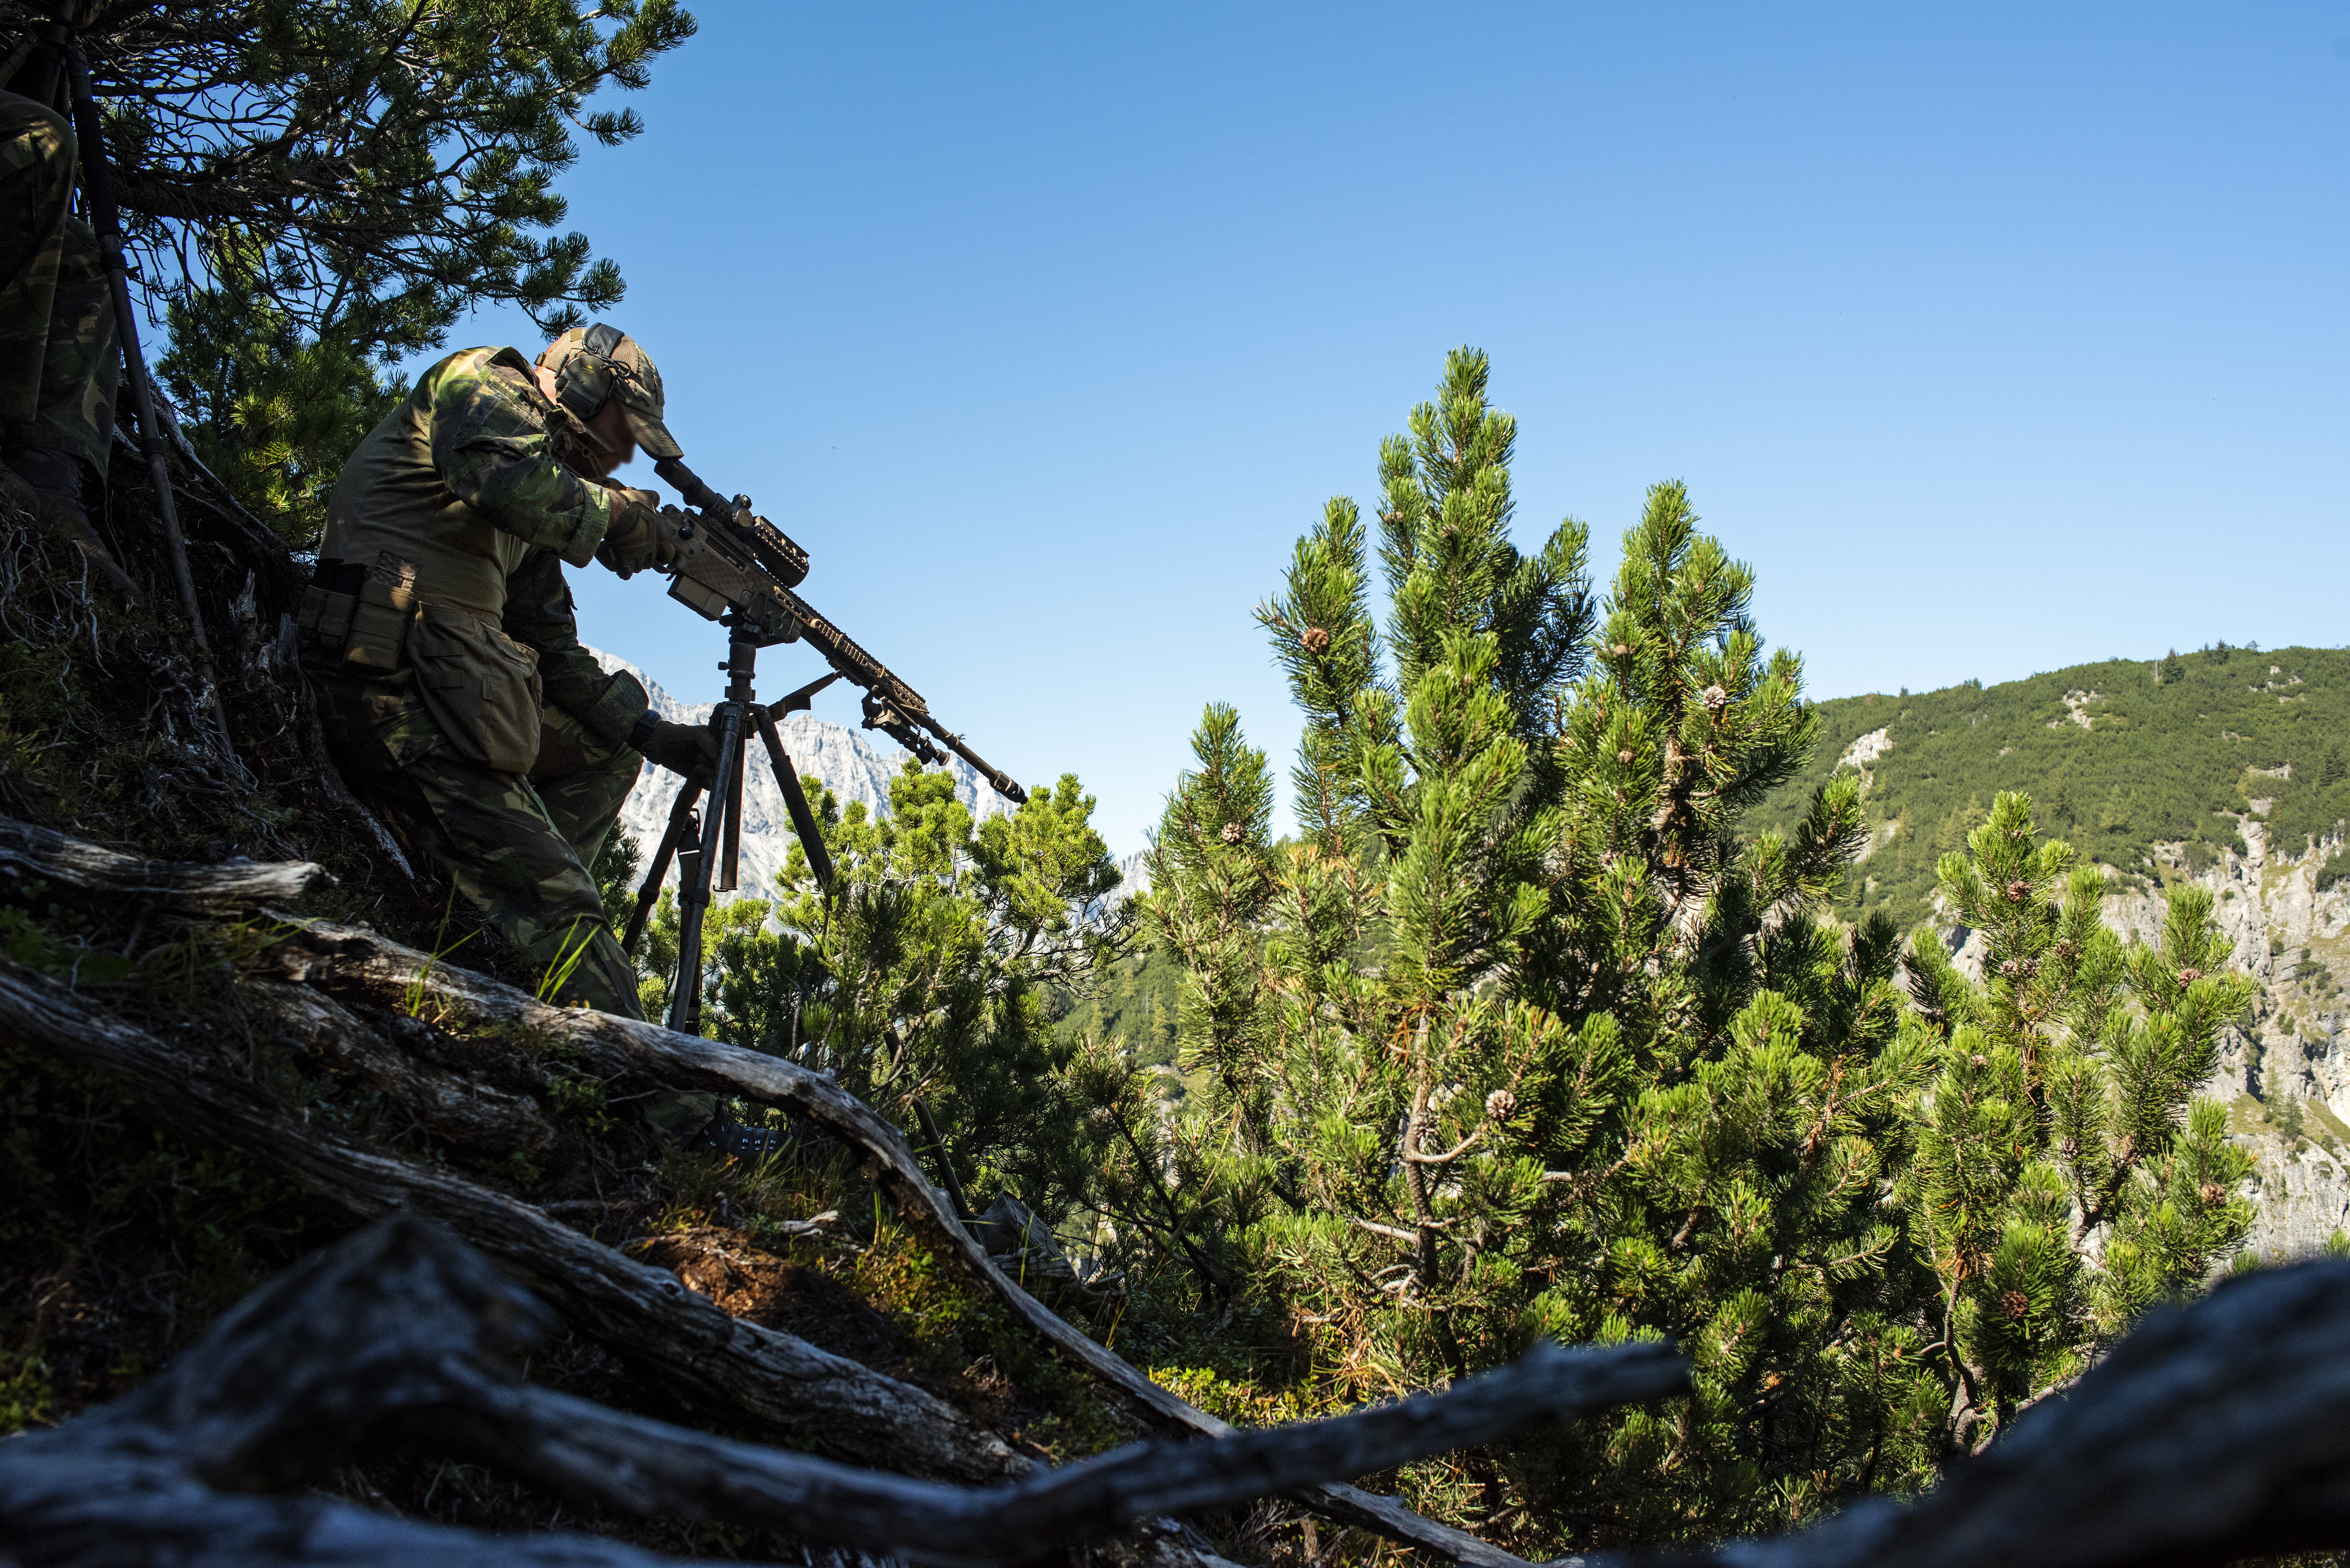 A Dutch sniper engages targets in a valley below on Sept. 12, 2018 during the International Special Training Centre High-Angle/Urban Course at the Hochfilzen Training Area, Austria. The high-angle portion of the two-week course is designed to teach trained sniper teams the necessary skills operating in mountainous terrain. (U.S. Army photo by 1st Lt. Benjamin Haulenbeek)